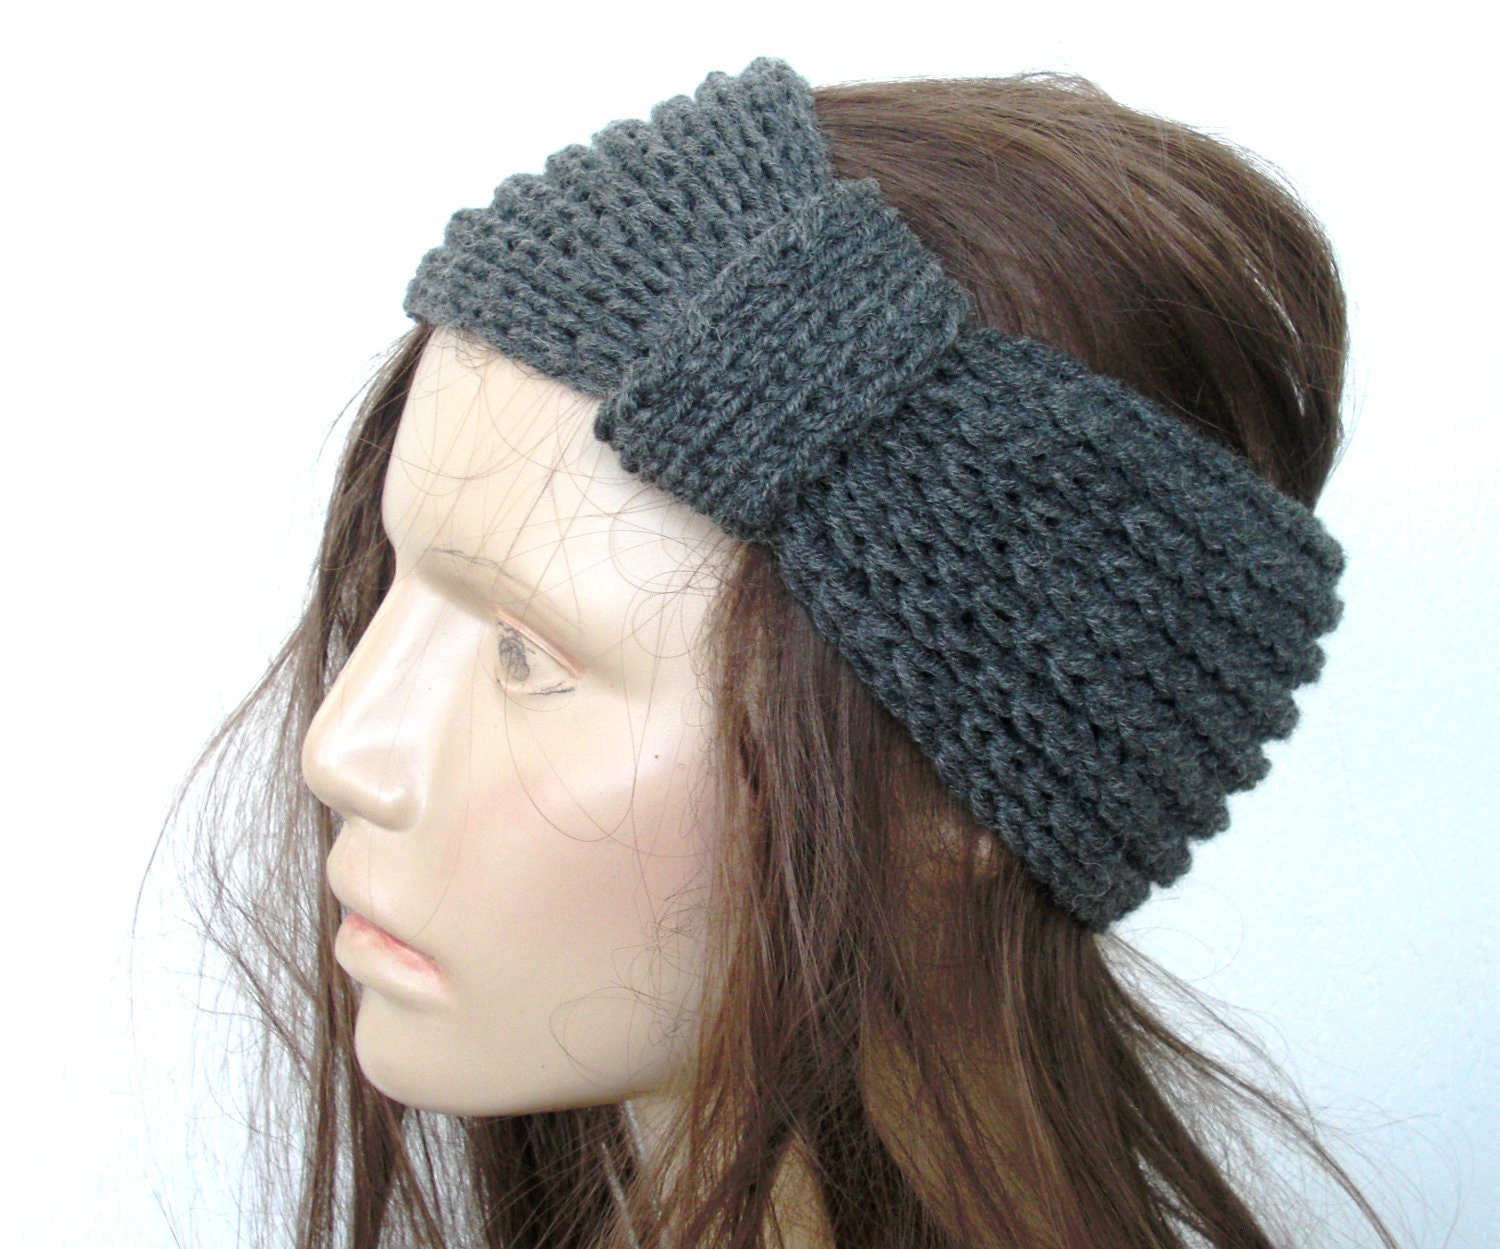 Hippie Headband Knitting Pattern : Womens Knit Boho Headband ear warmer head wrap Turban by Ebruk